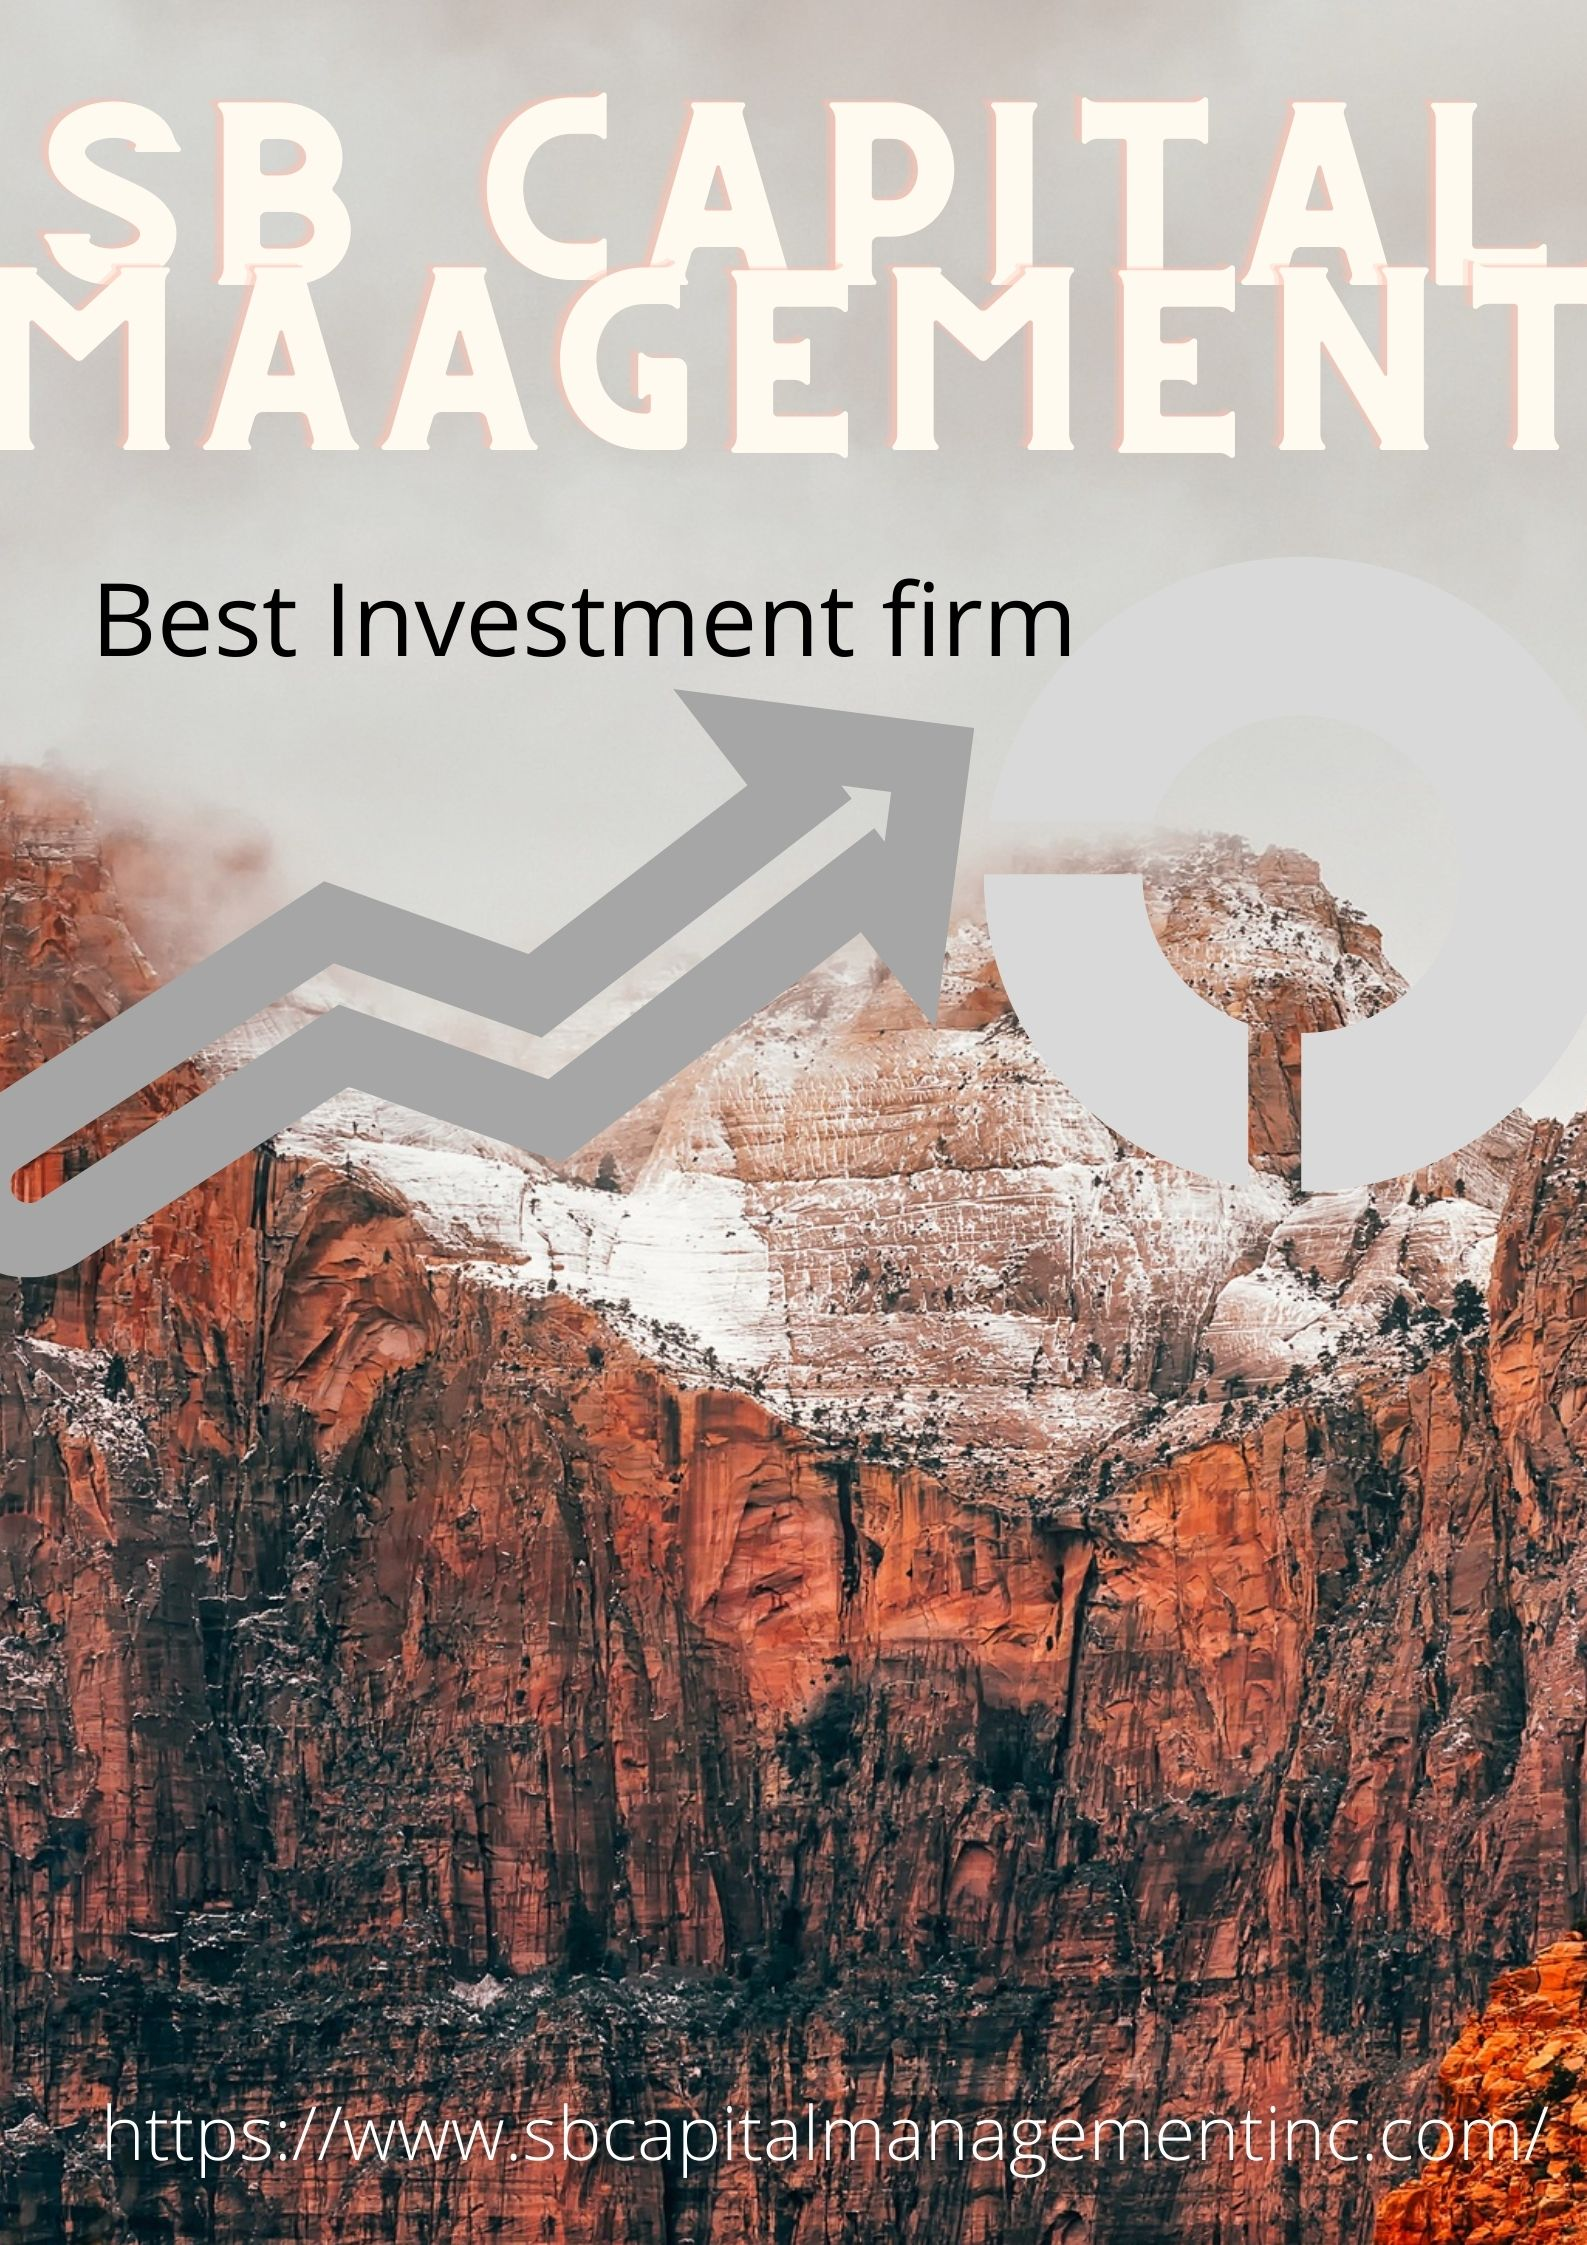 Top 7 Characteristic of Best Investment Firms